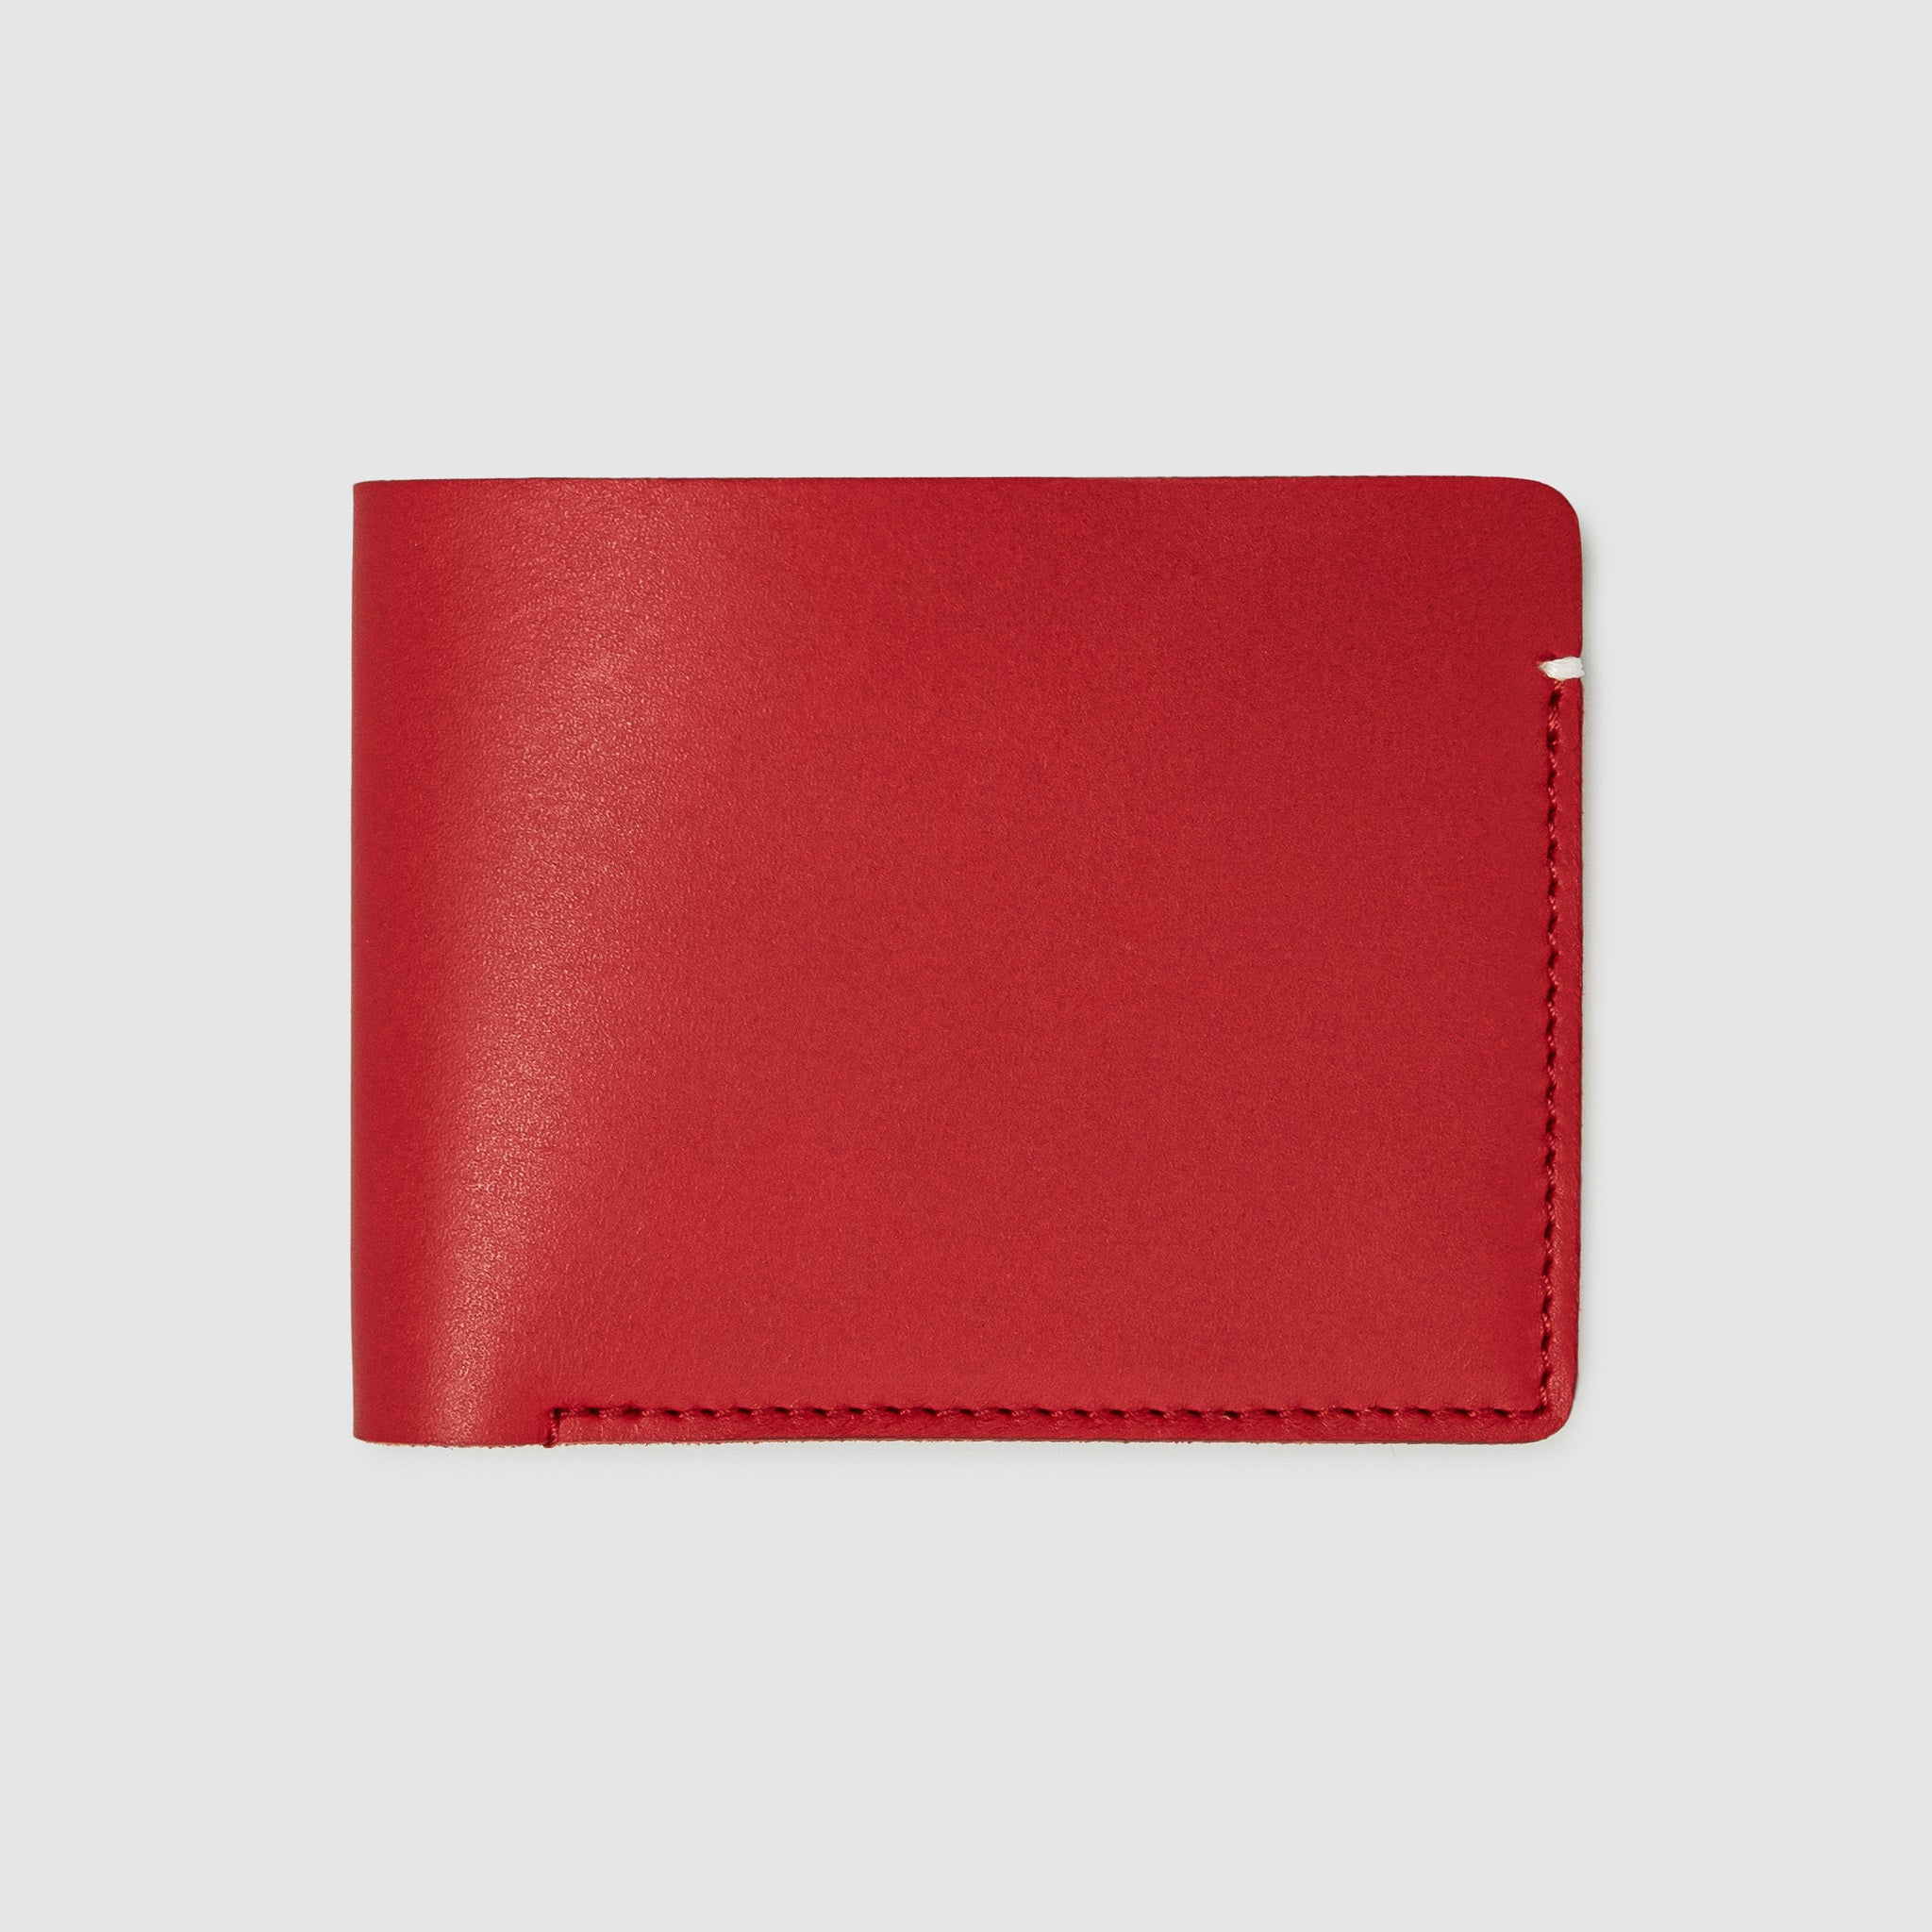 Anson Calder Billfold Wallet French Calfskin Leather _red